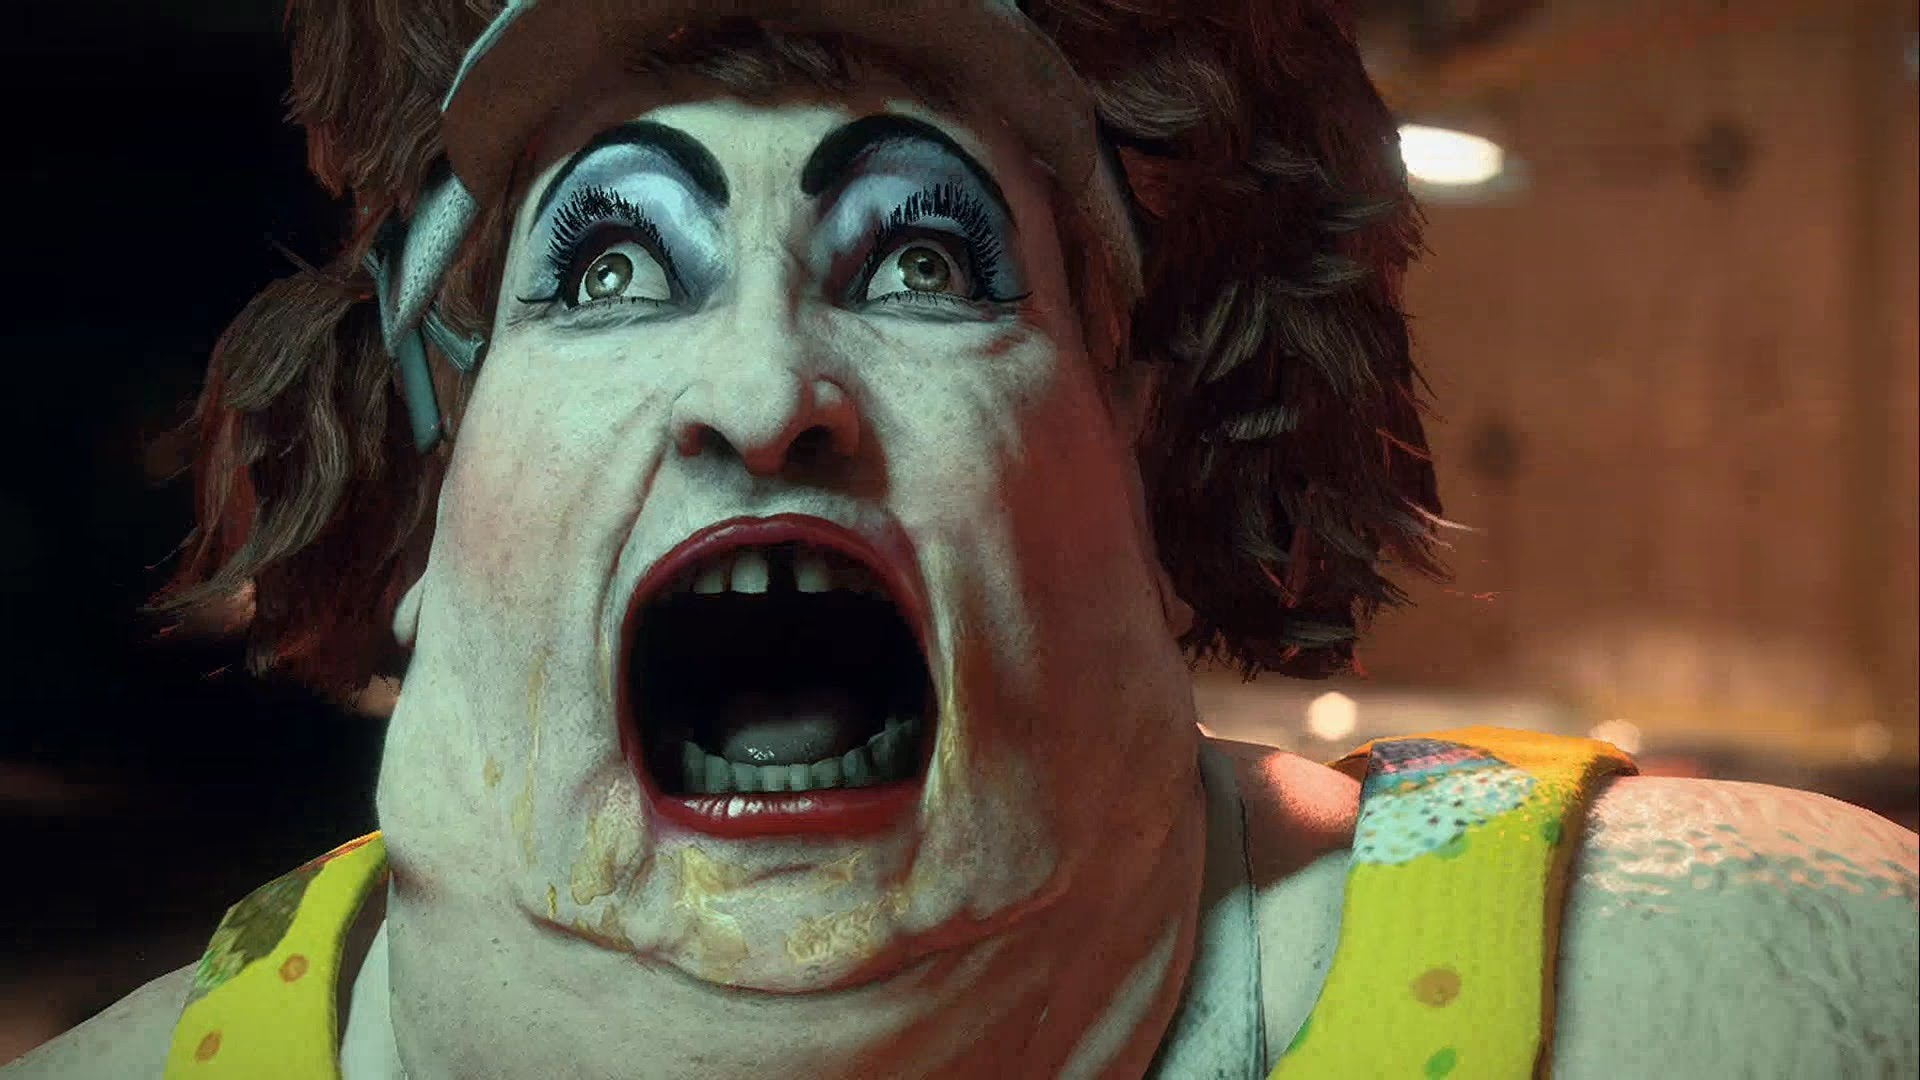 Dead Rising studio to utilize Unreal Engine 4 for upcoming projects